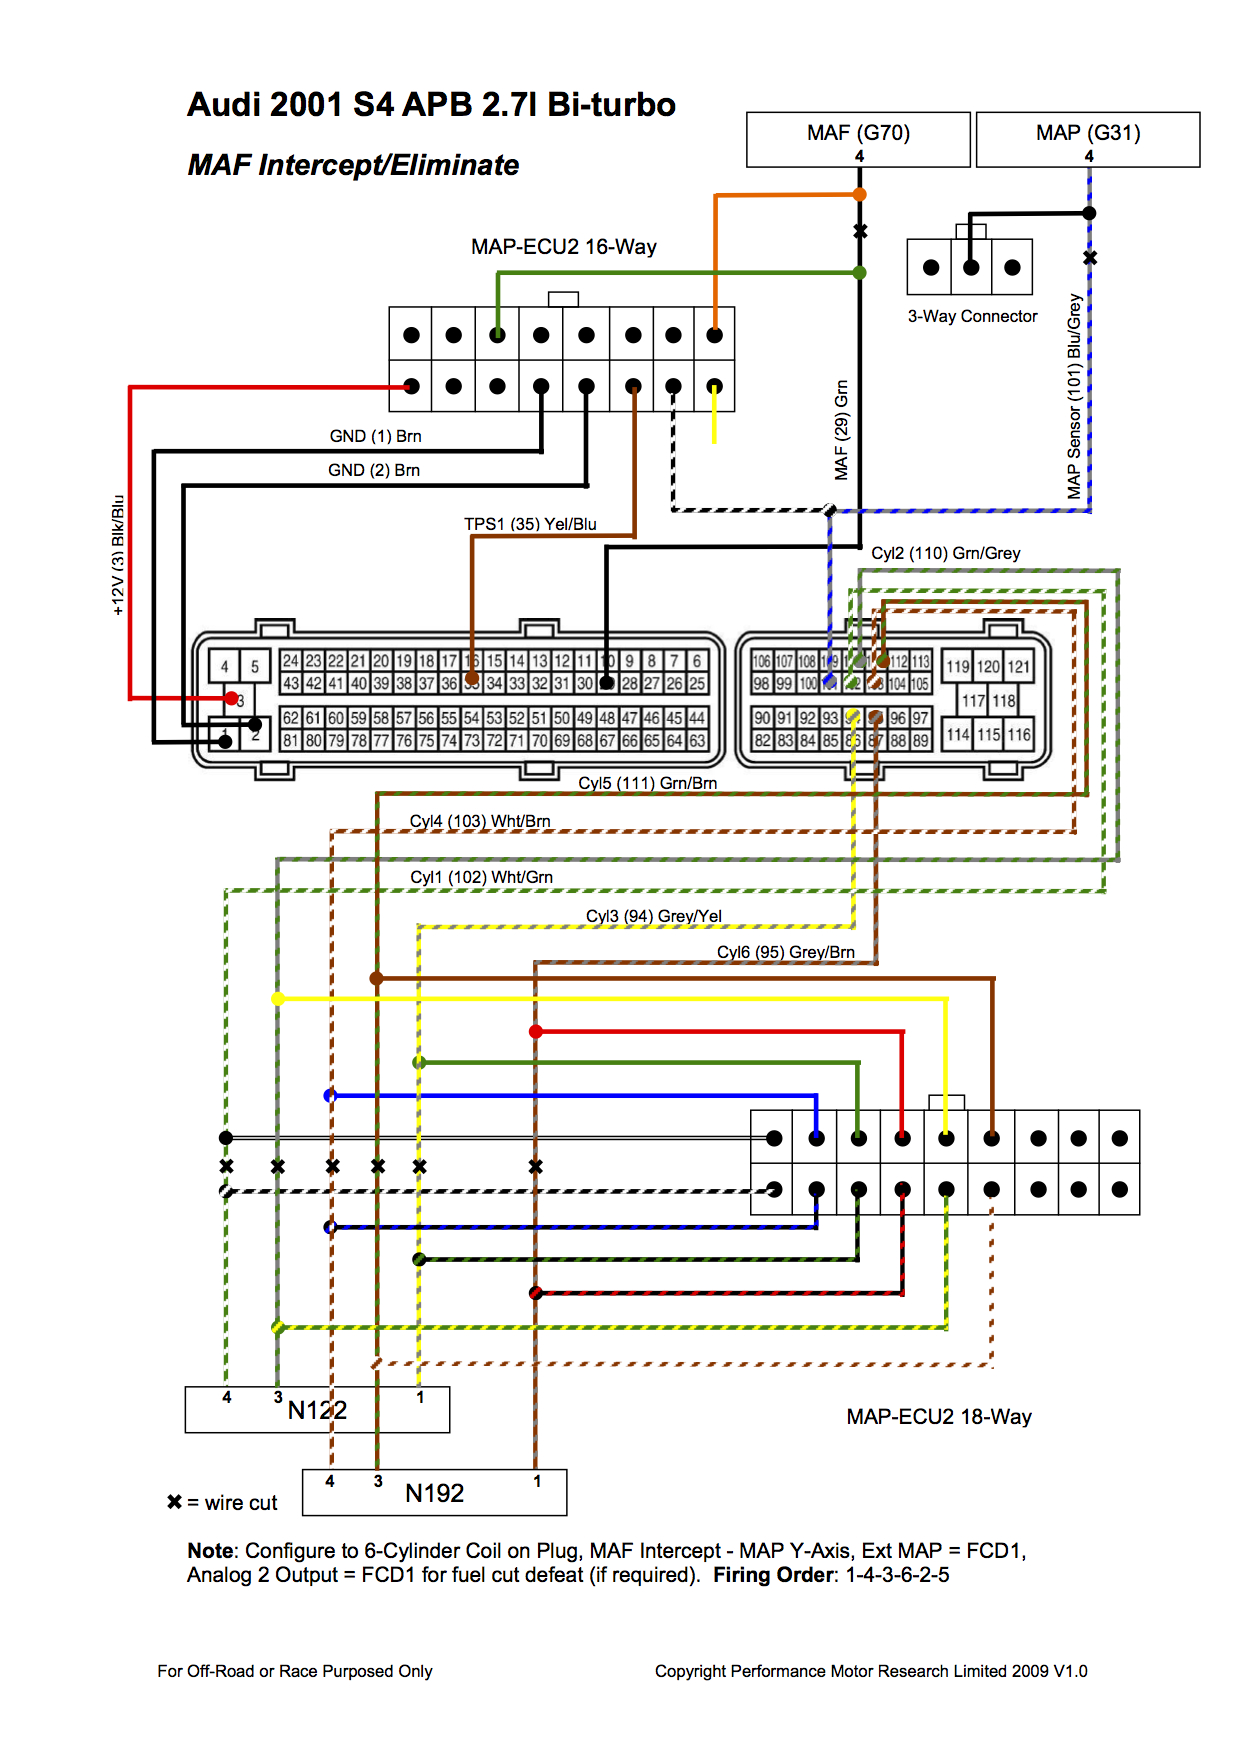 Audi S4 20011 2009 toyota camry wiring diagram 2009 toyota camry electrical  at gsmportal.co